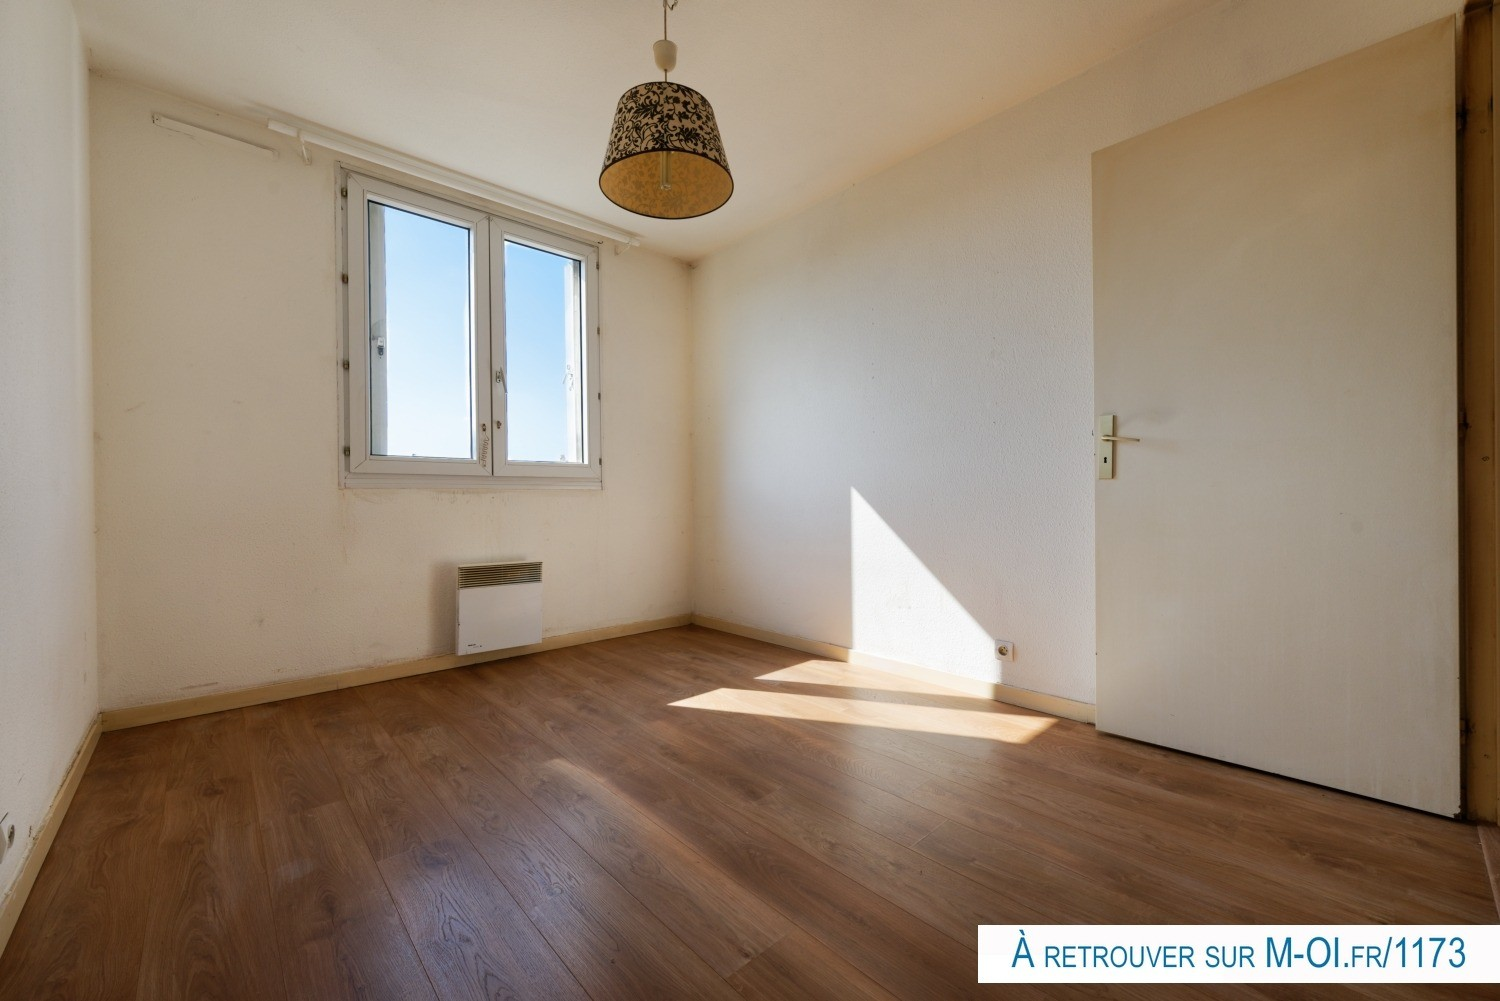 13100-aix-en-provence-vente-appartement-4-pieces_2.jpg